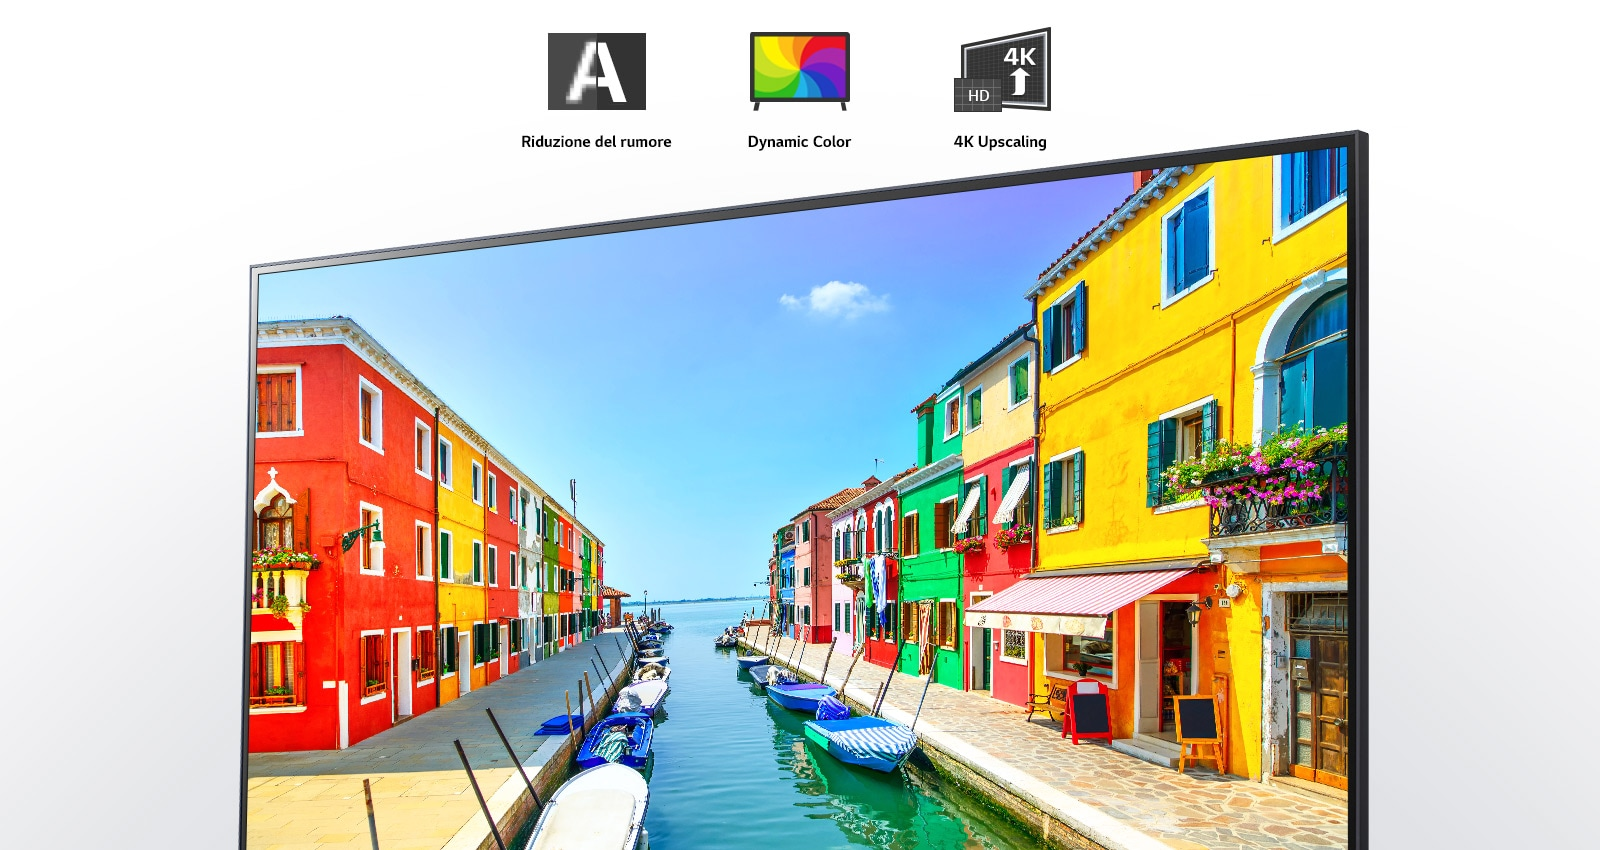 A television screen showing a harbor town with colorful houses and small boats moored on a long, narrow canal.